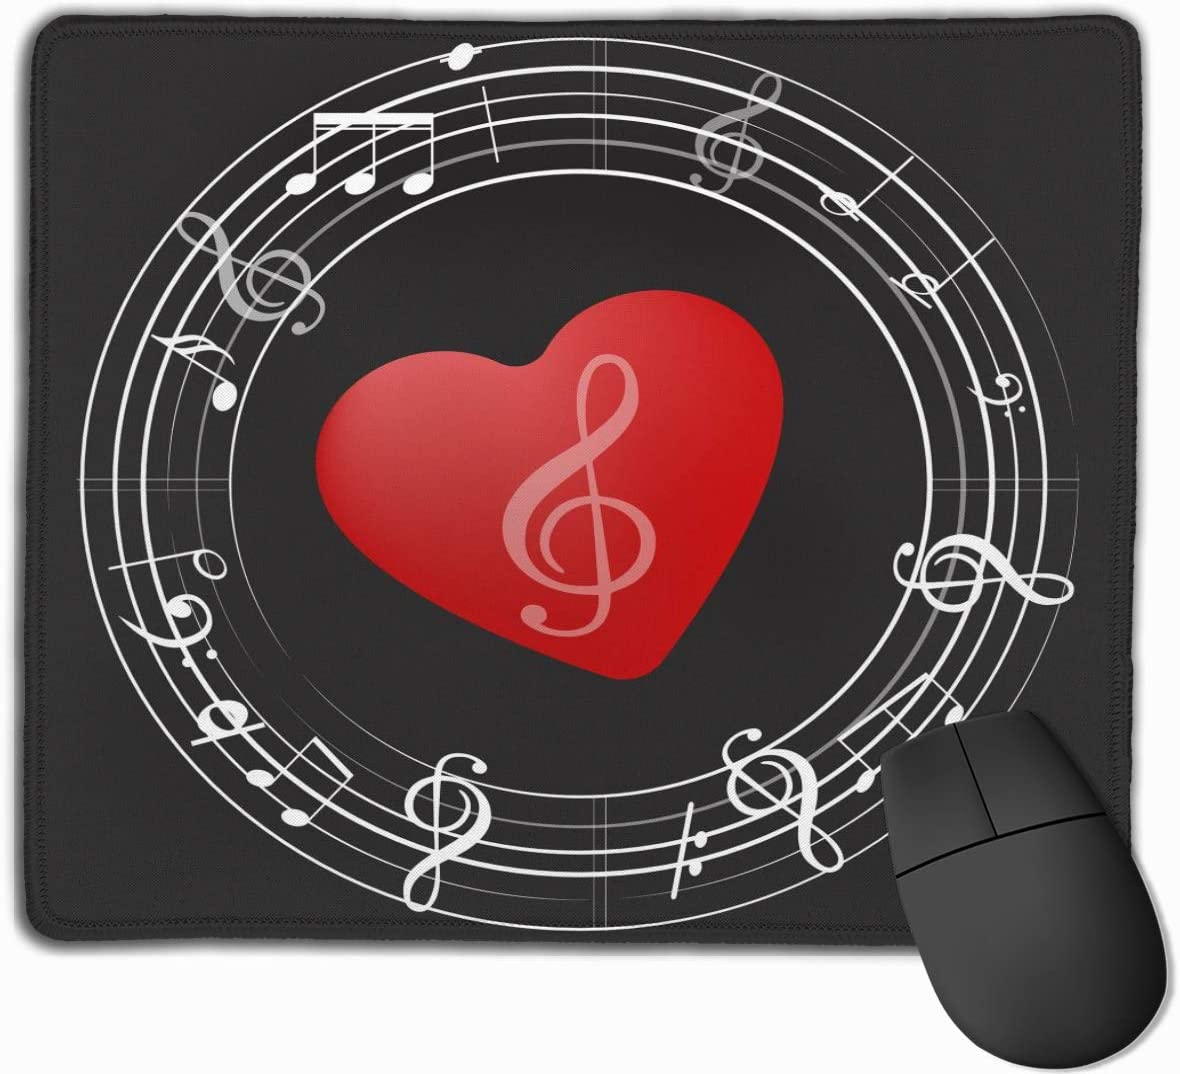 Music Symbols Gaming Mouse Pad Custom Non-Slip Rubber Rectangle Mousepad Design Stitched Edges 9.5×7.9 Inch Black Red